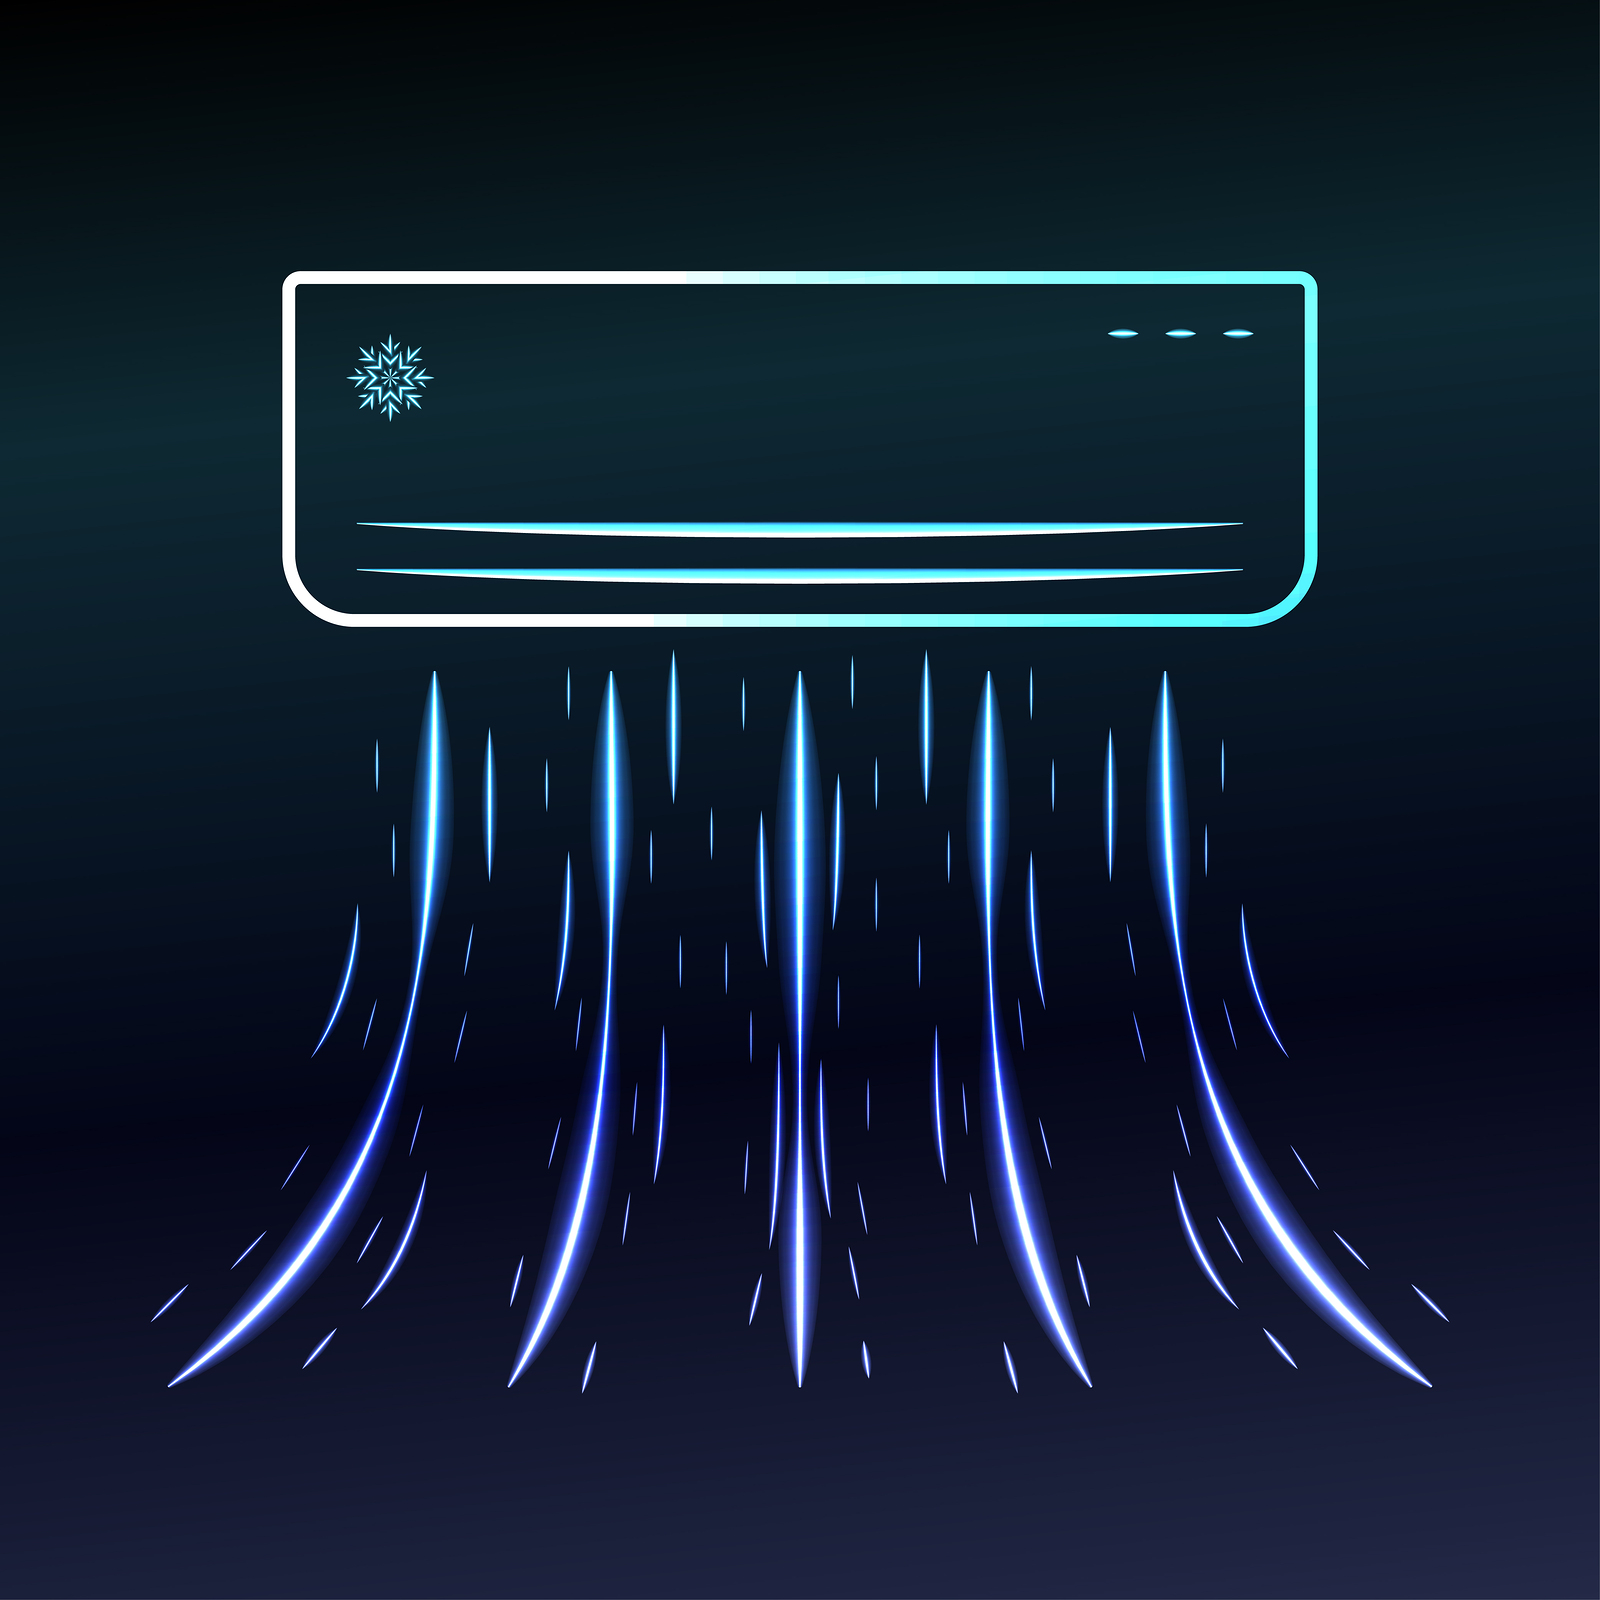 Air conditioner blows ice cool air on blue background Vector illustration.